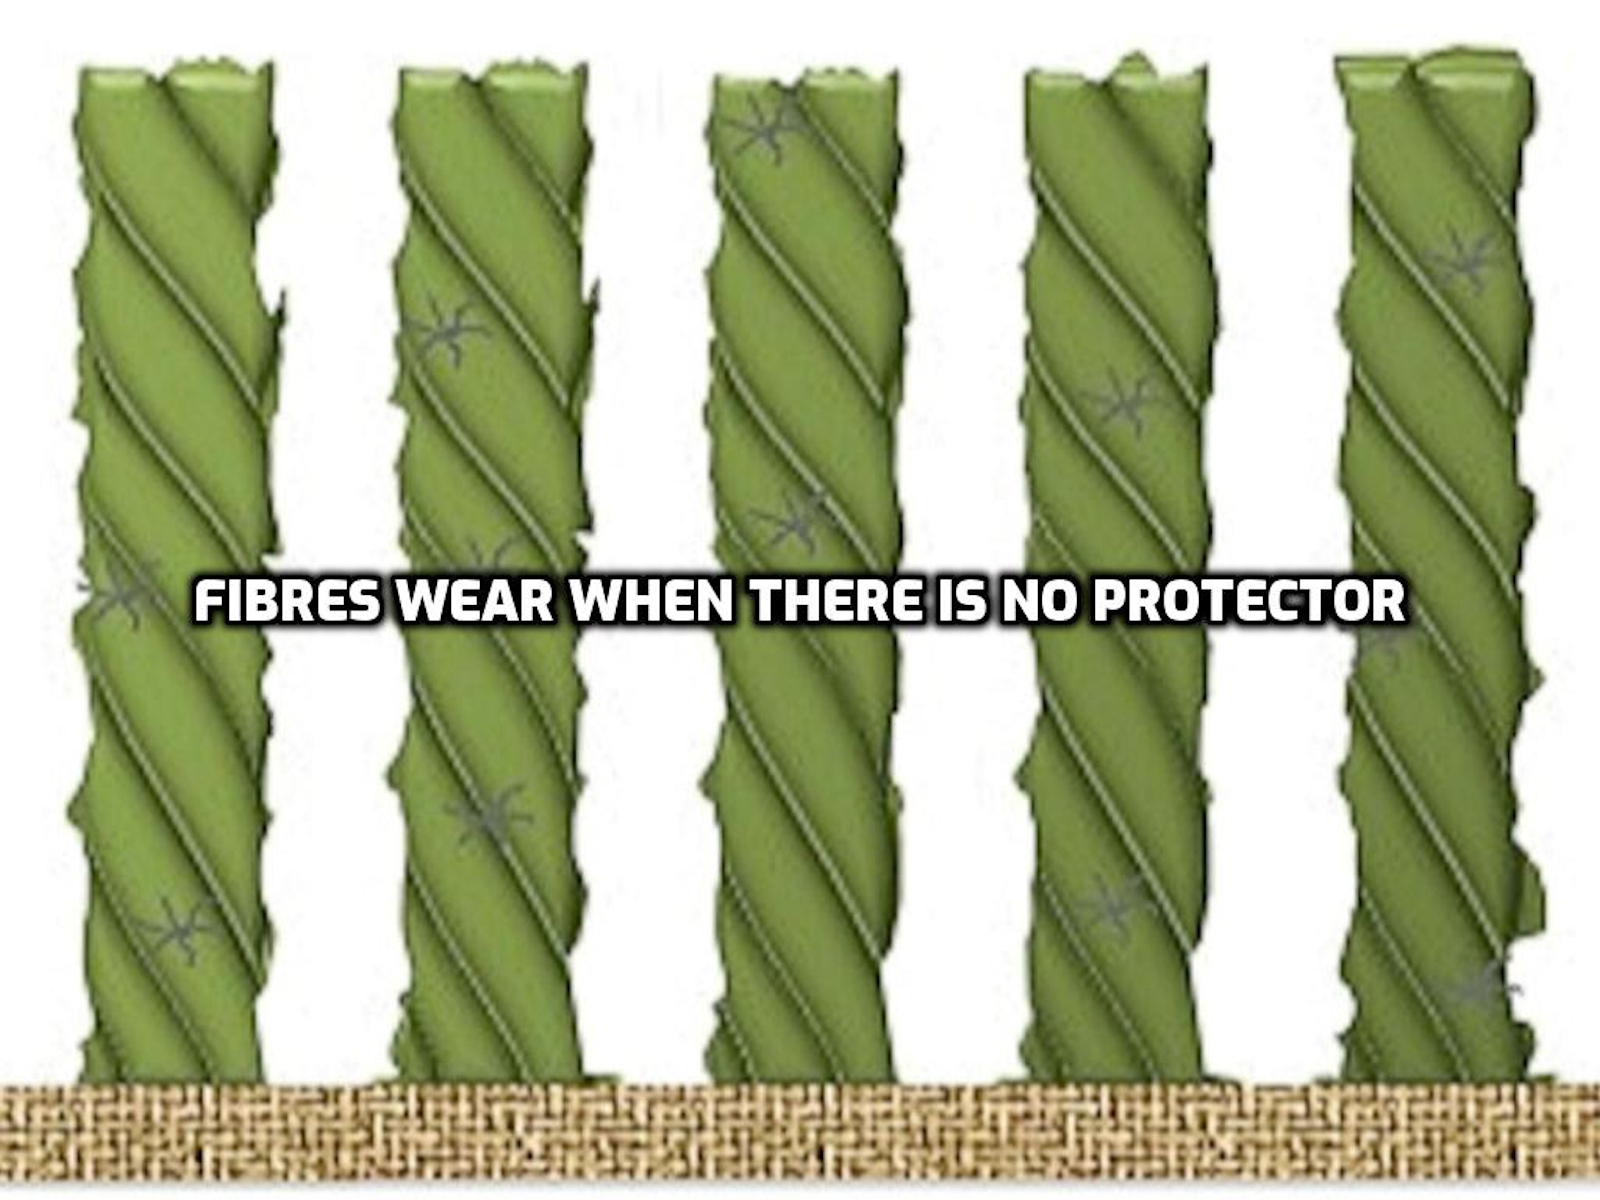 When there is no protection applied the fibres are exposed to wear